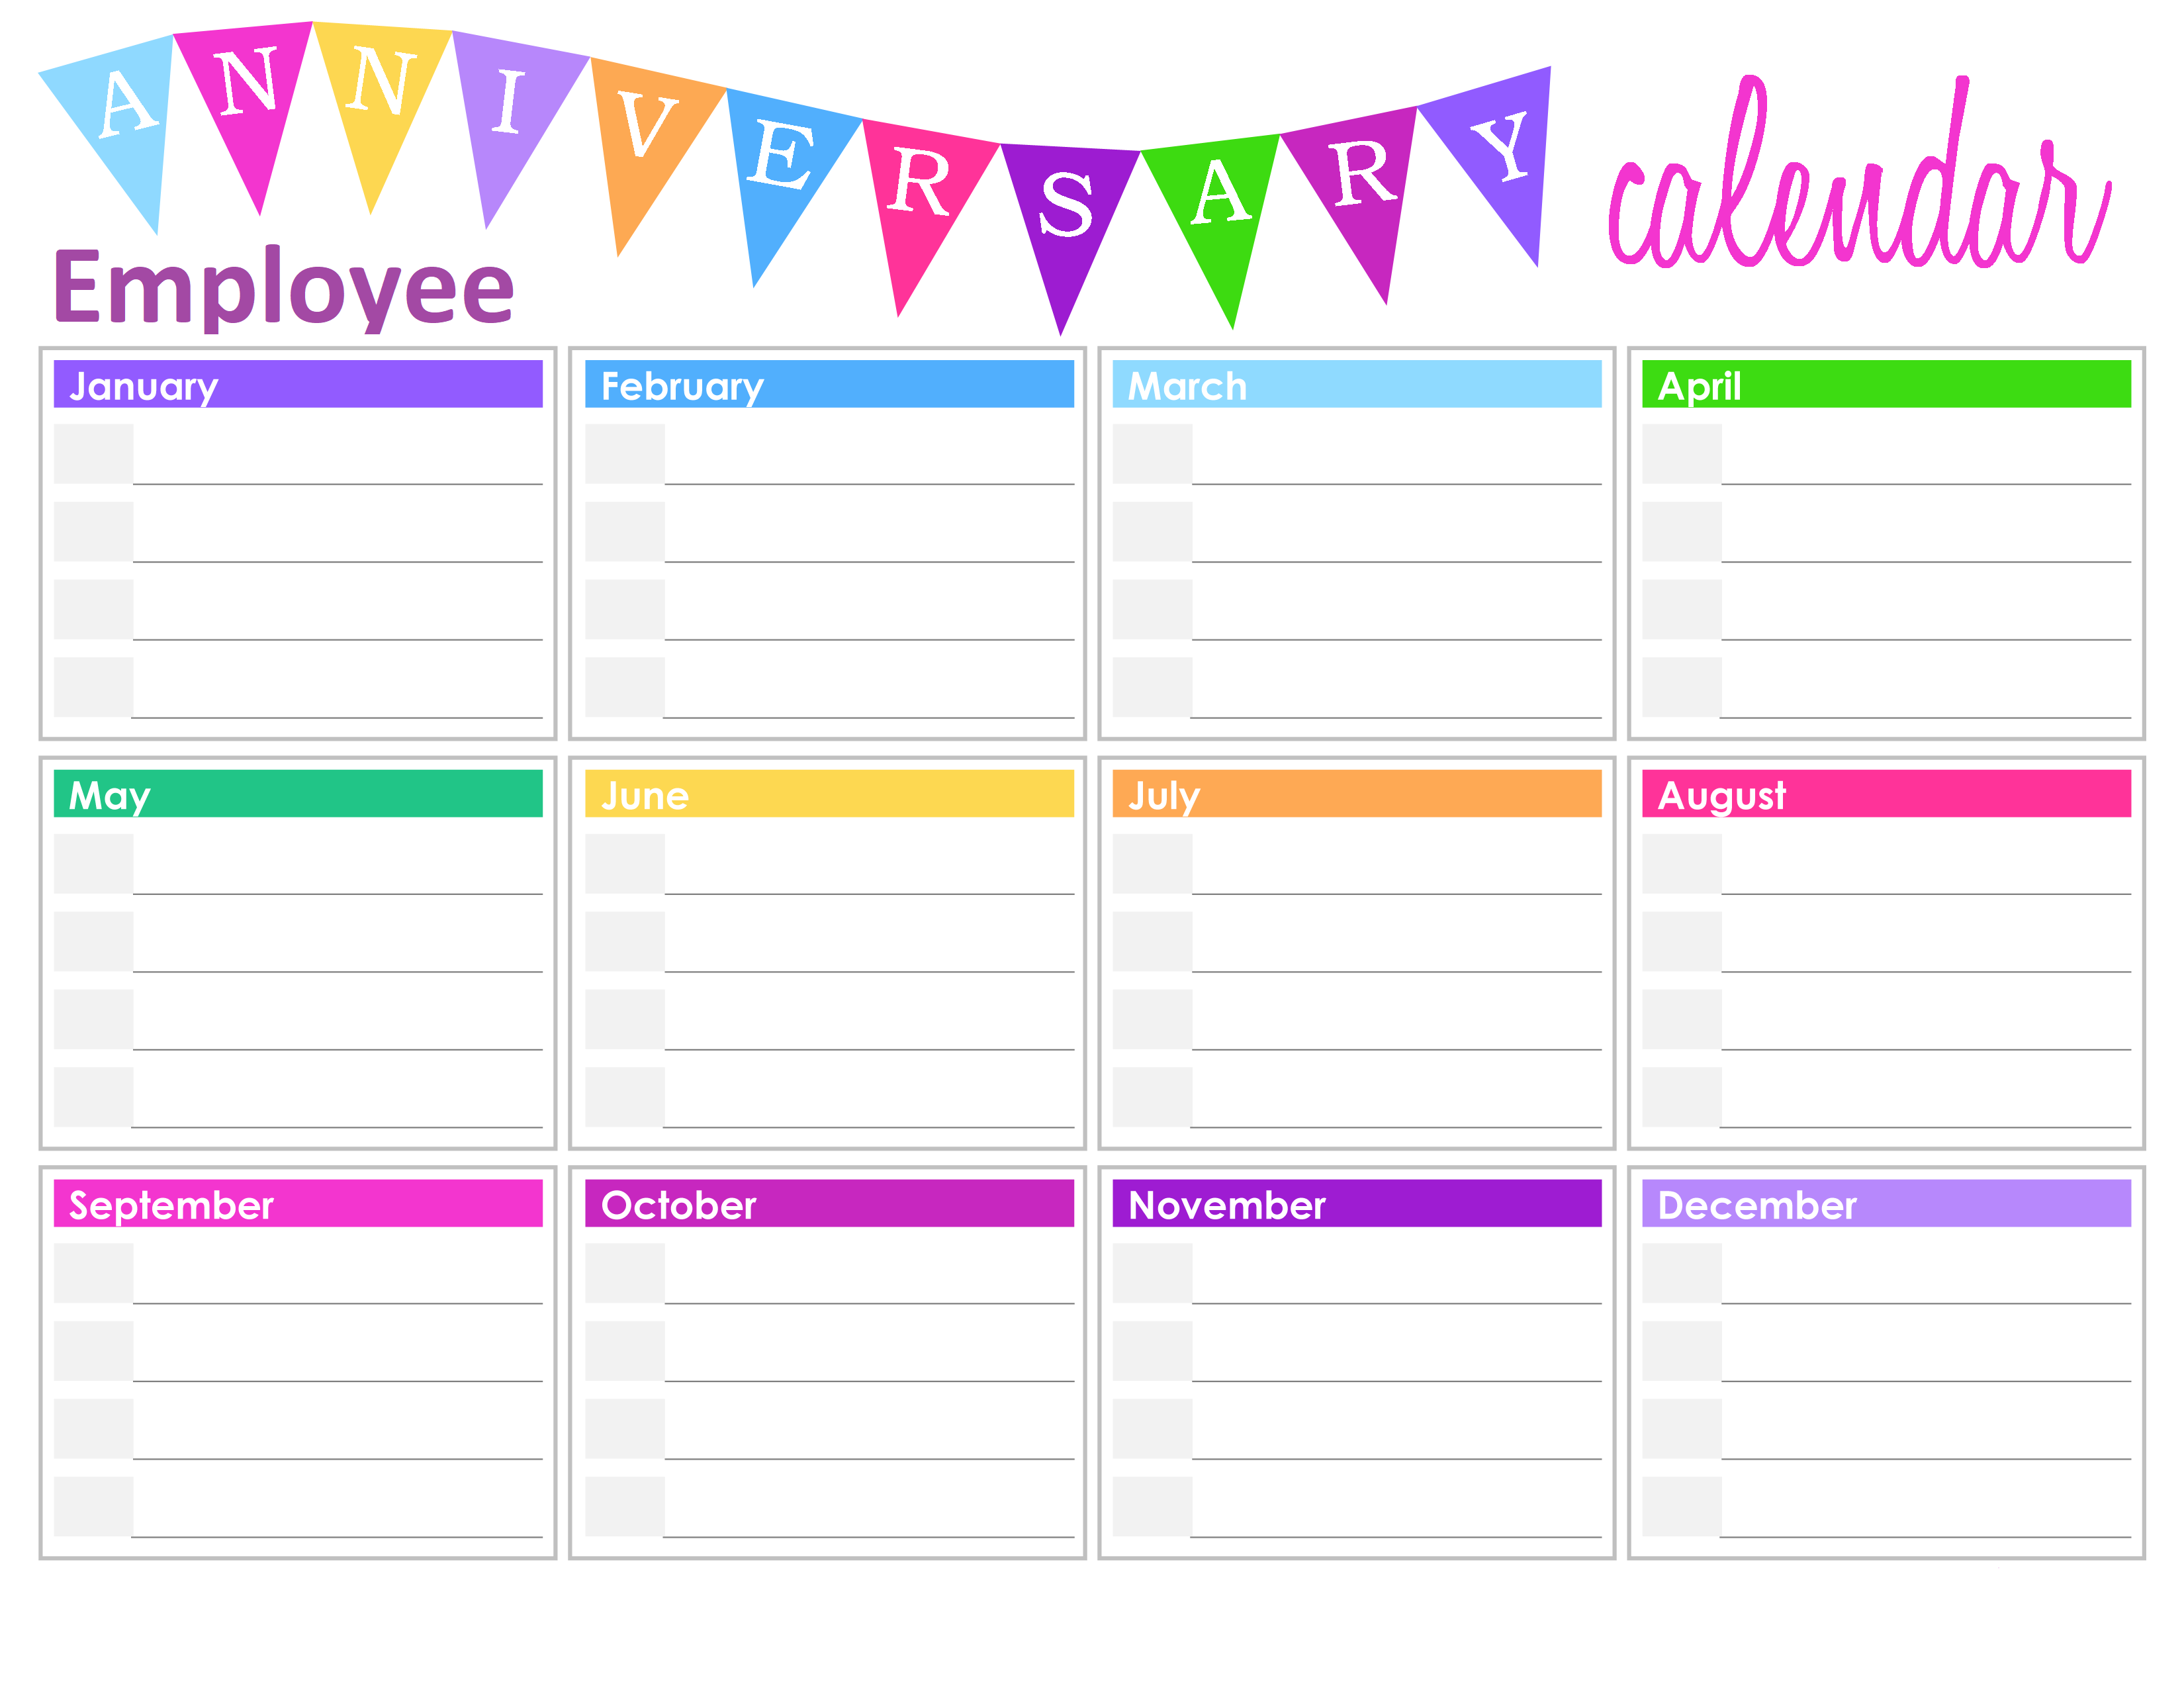 Employee Birthday Calendar Template